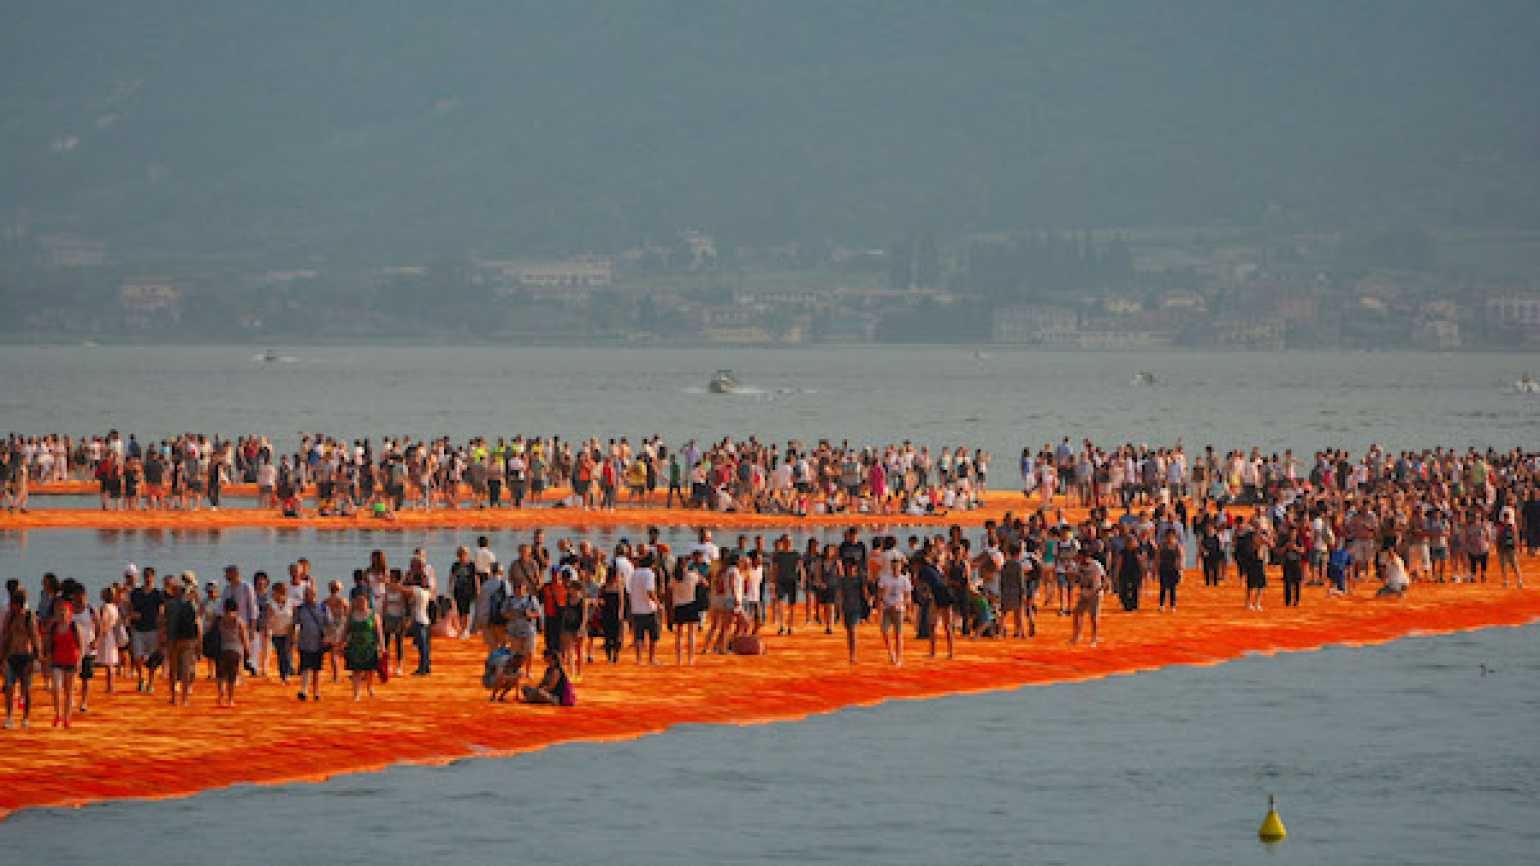 A view of the installation 'The Floating Piers' on the Iseo Lake by the Bulgarian artist Christo